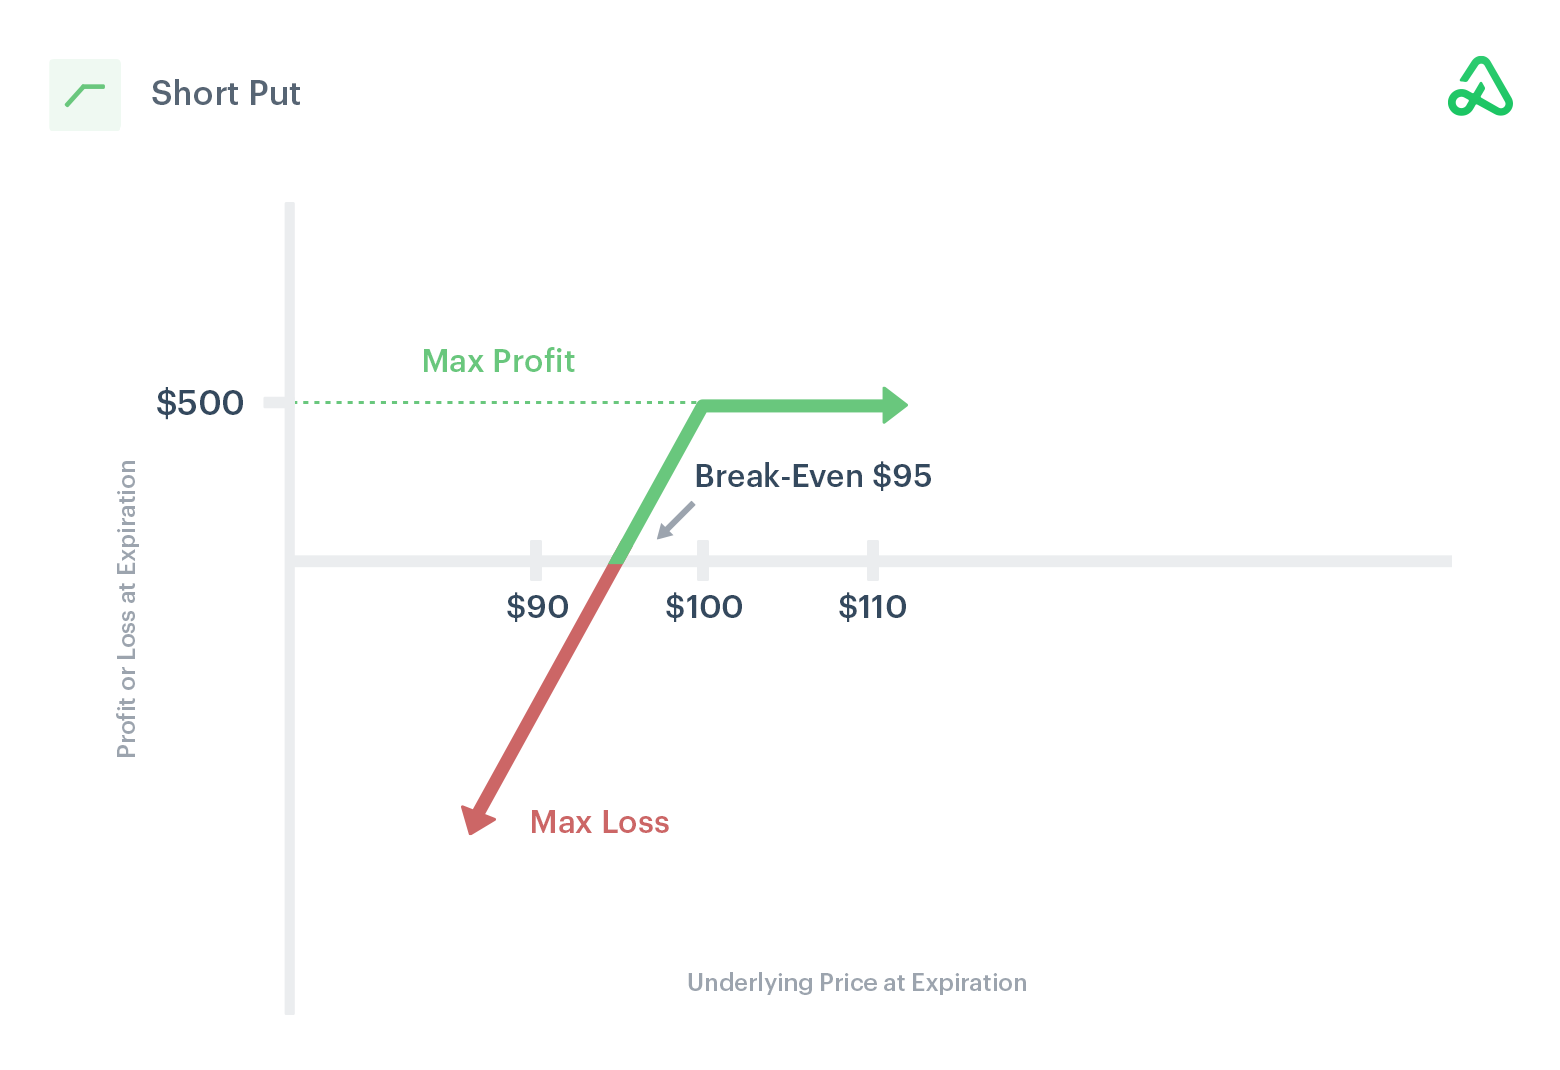 Image of short put payoff diagram showing max profit, max loss, and break-even points